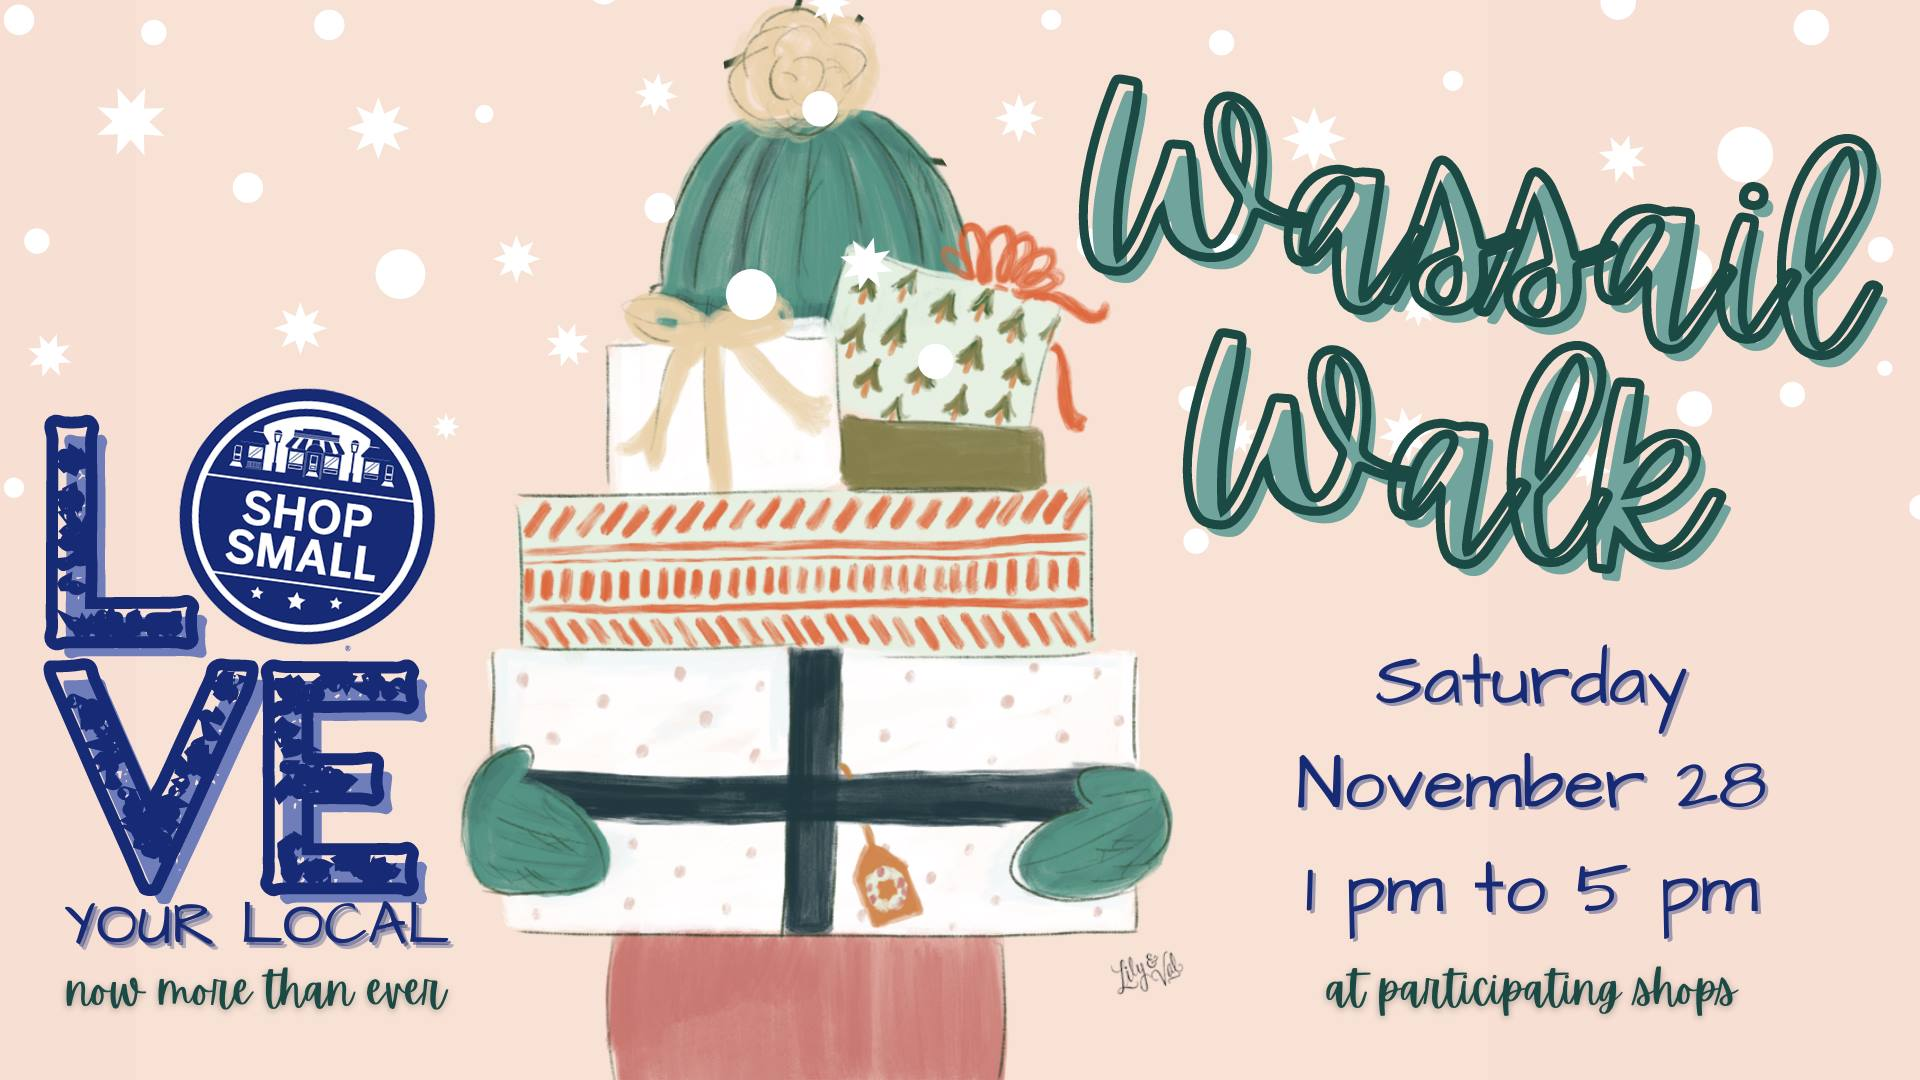 Invitation to 2020 Small Business Saturday and Wassail Walk in Marshall, Texas